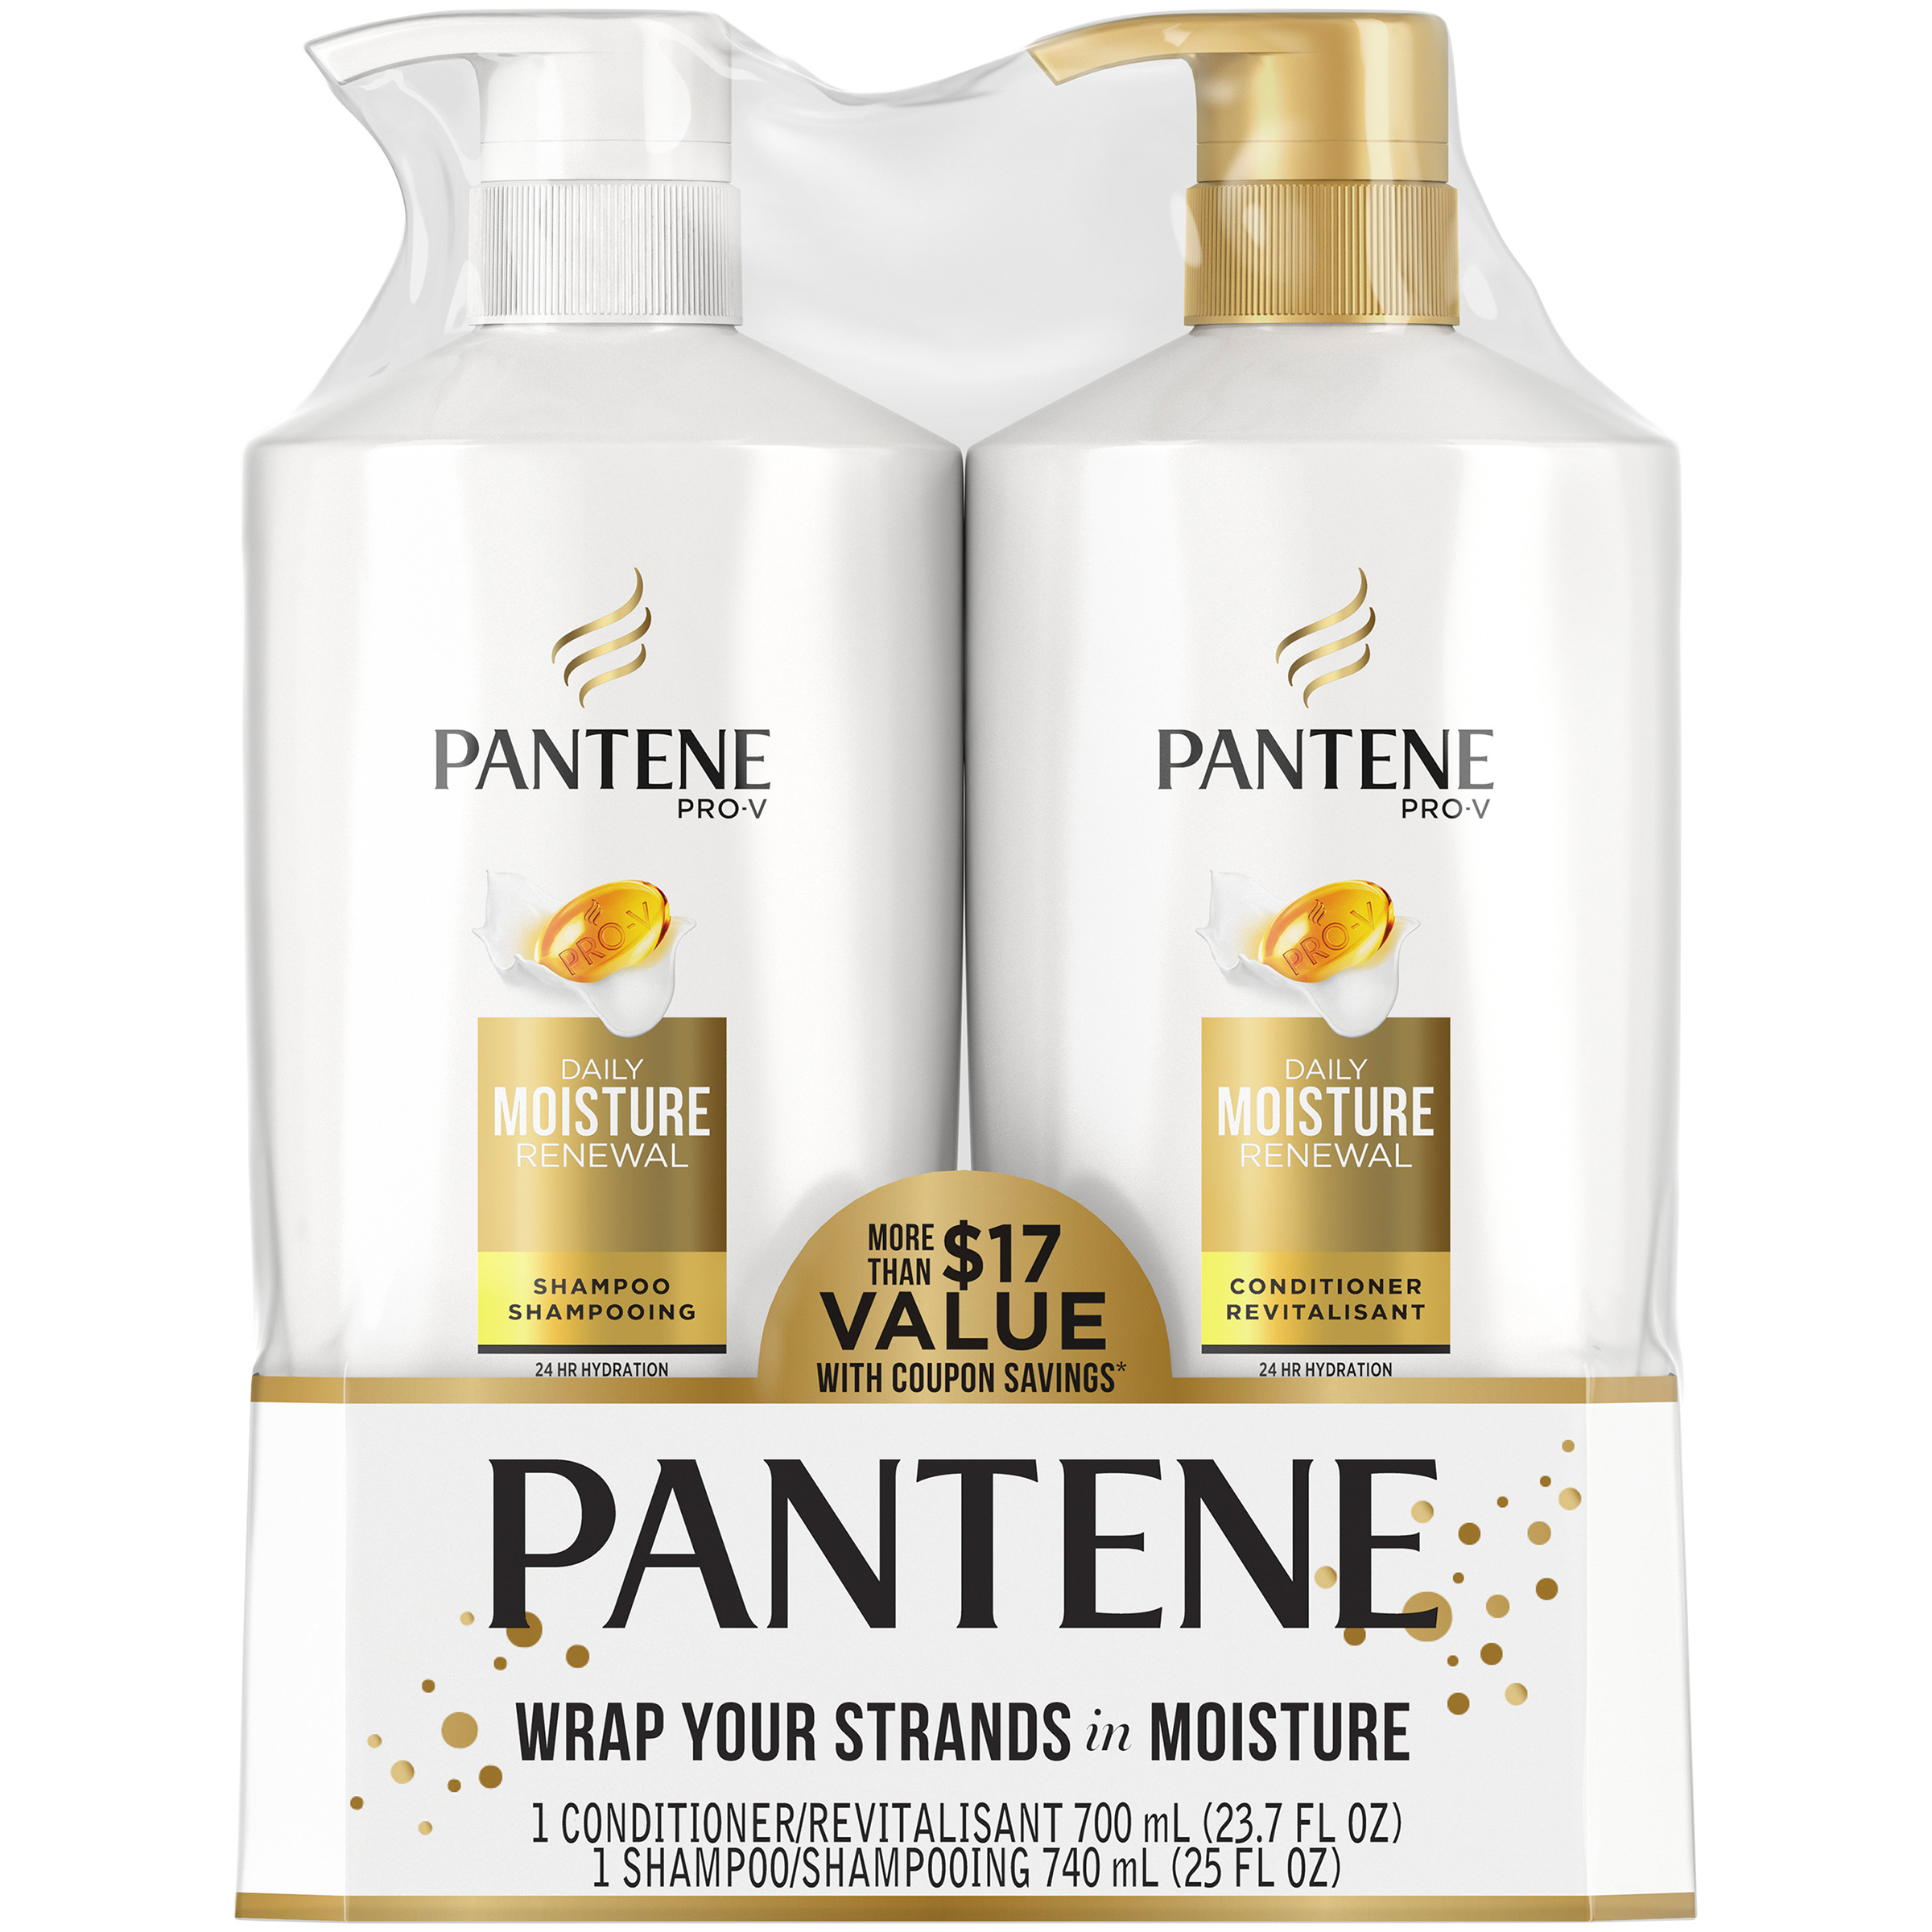 Pantene Pro-V Daily Moisture Renewal Shampoo and Conditioner Dual Pack, 48.7 fl oz